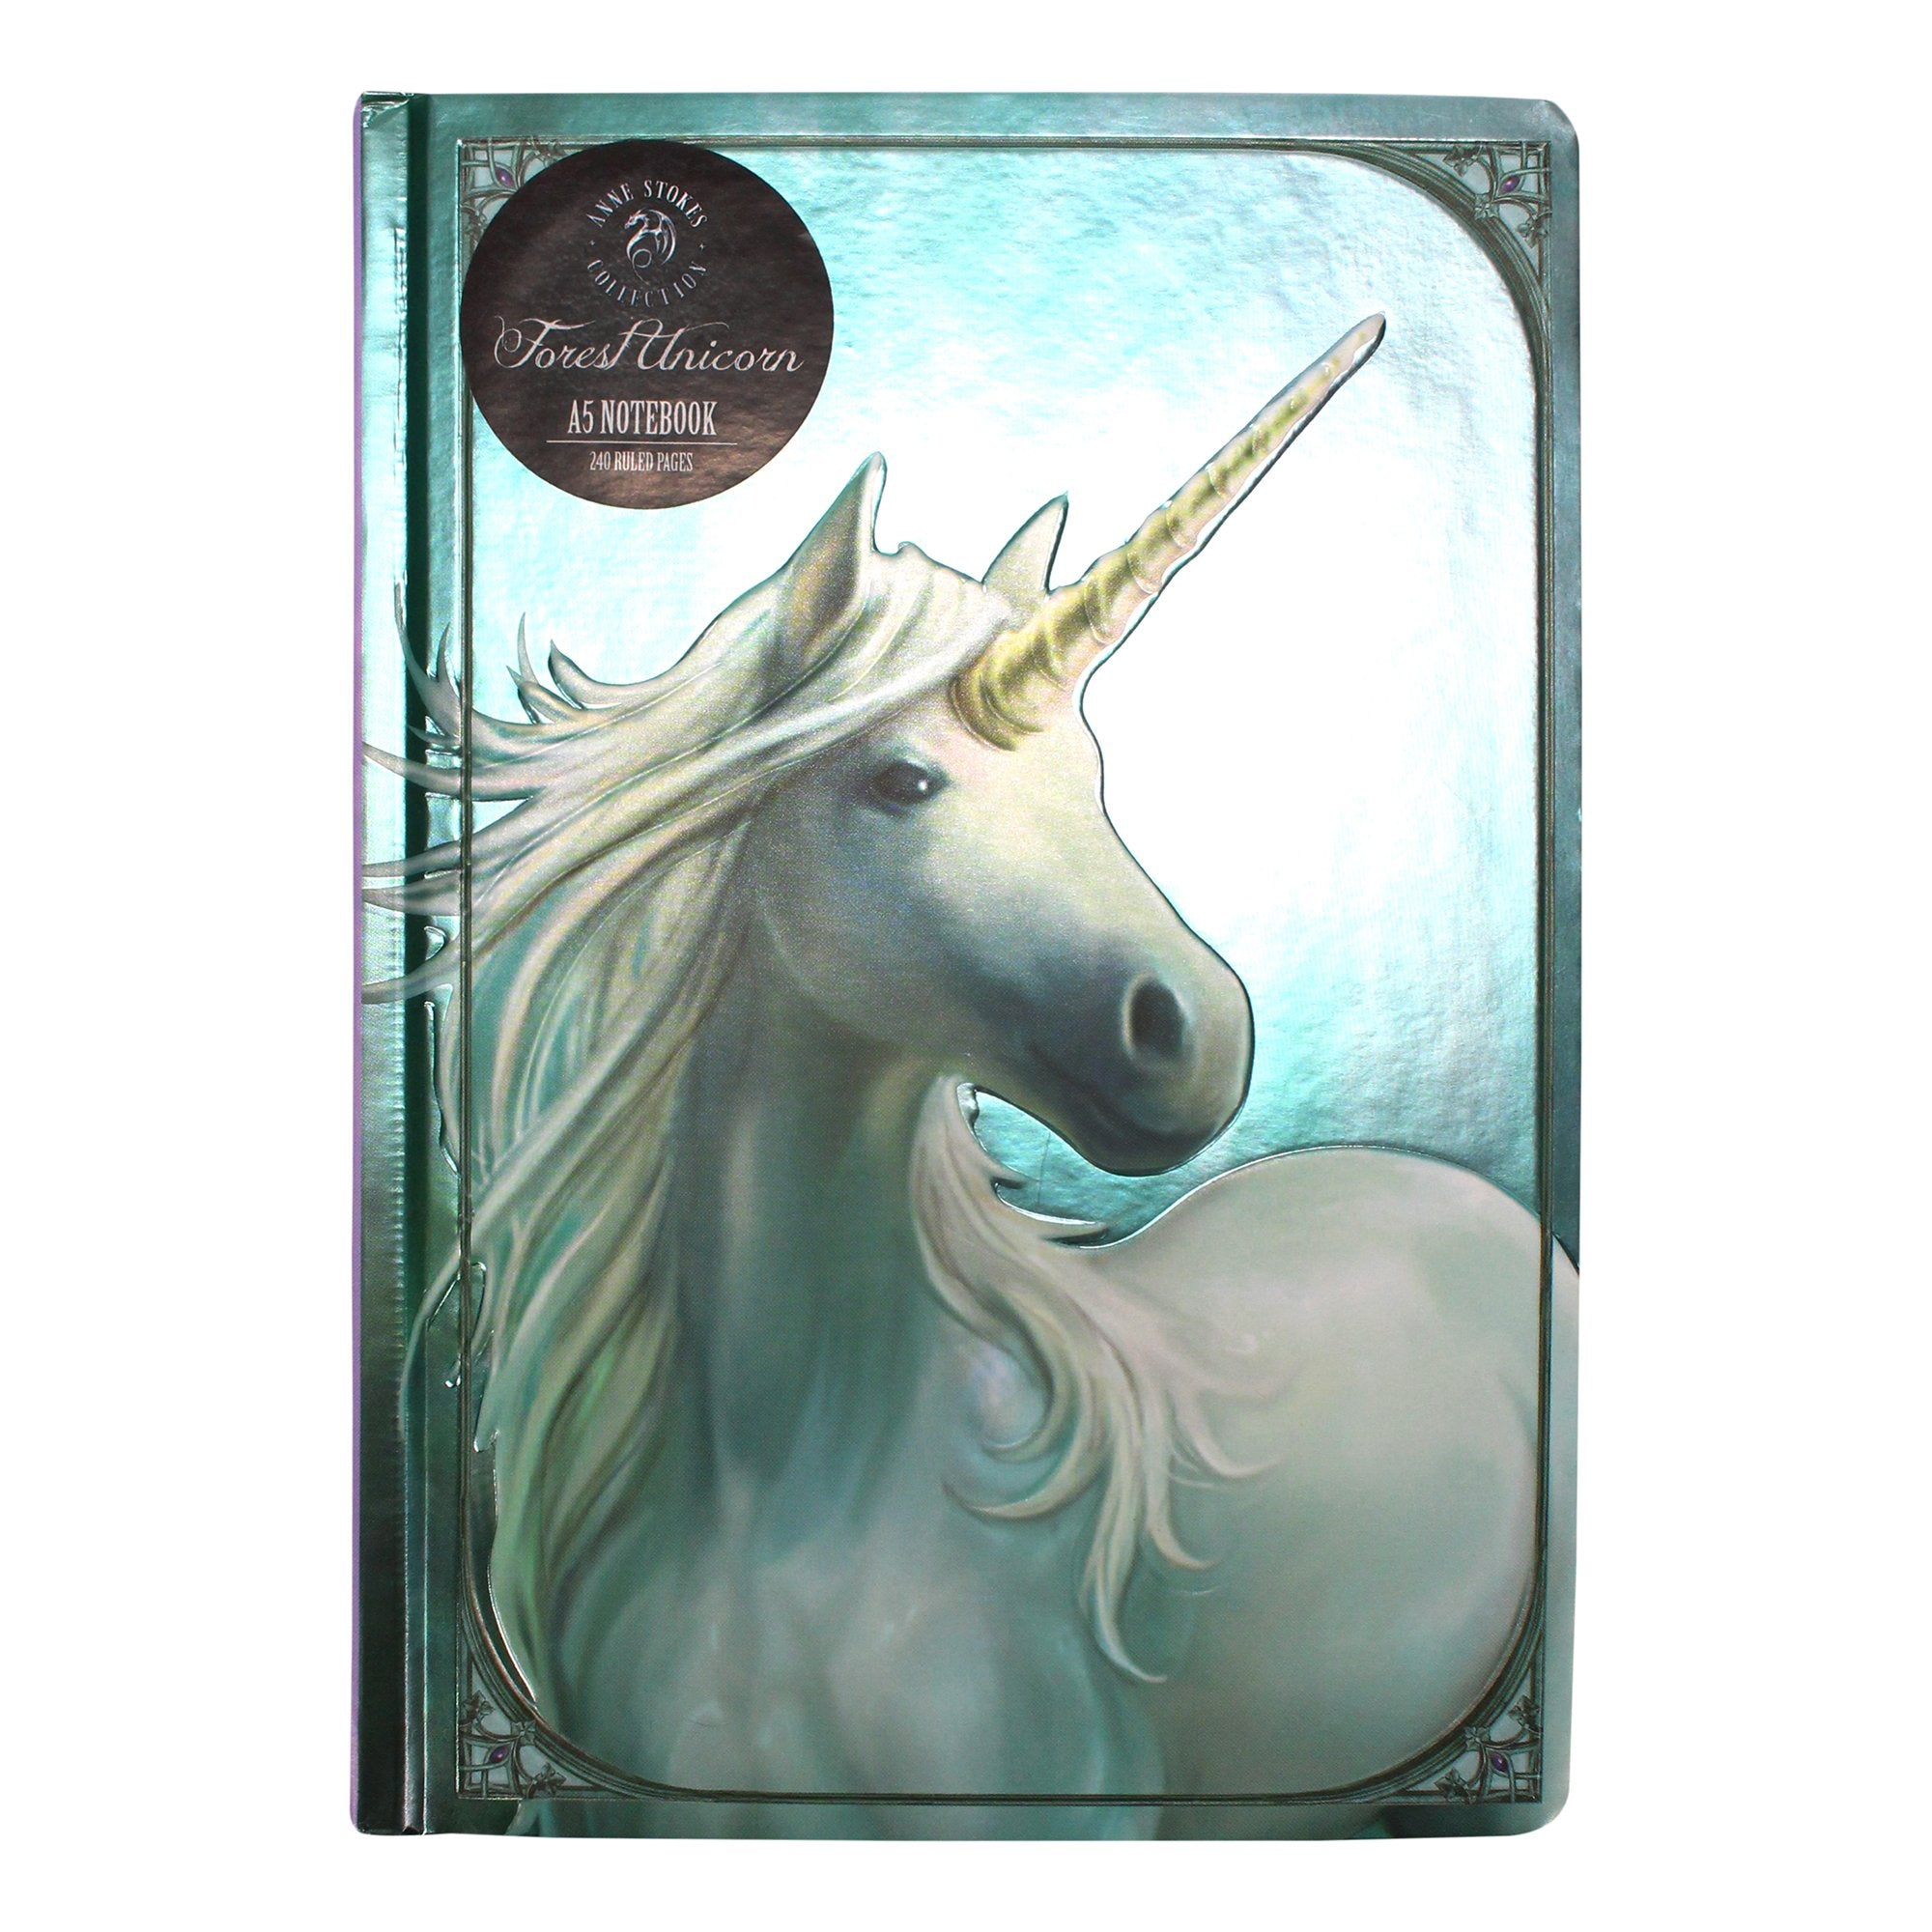 Anne Stokes A5 Notebook - Forest Unicorn - Half Moon Bay US